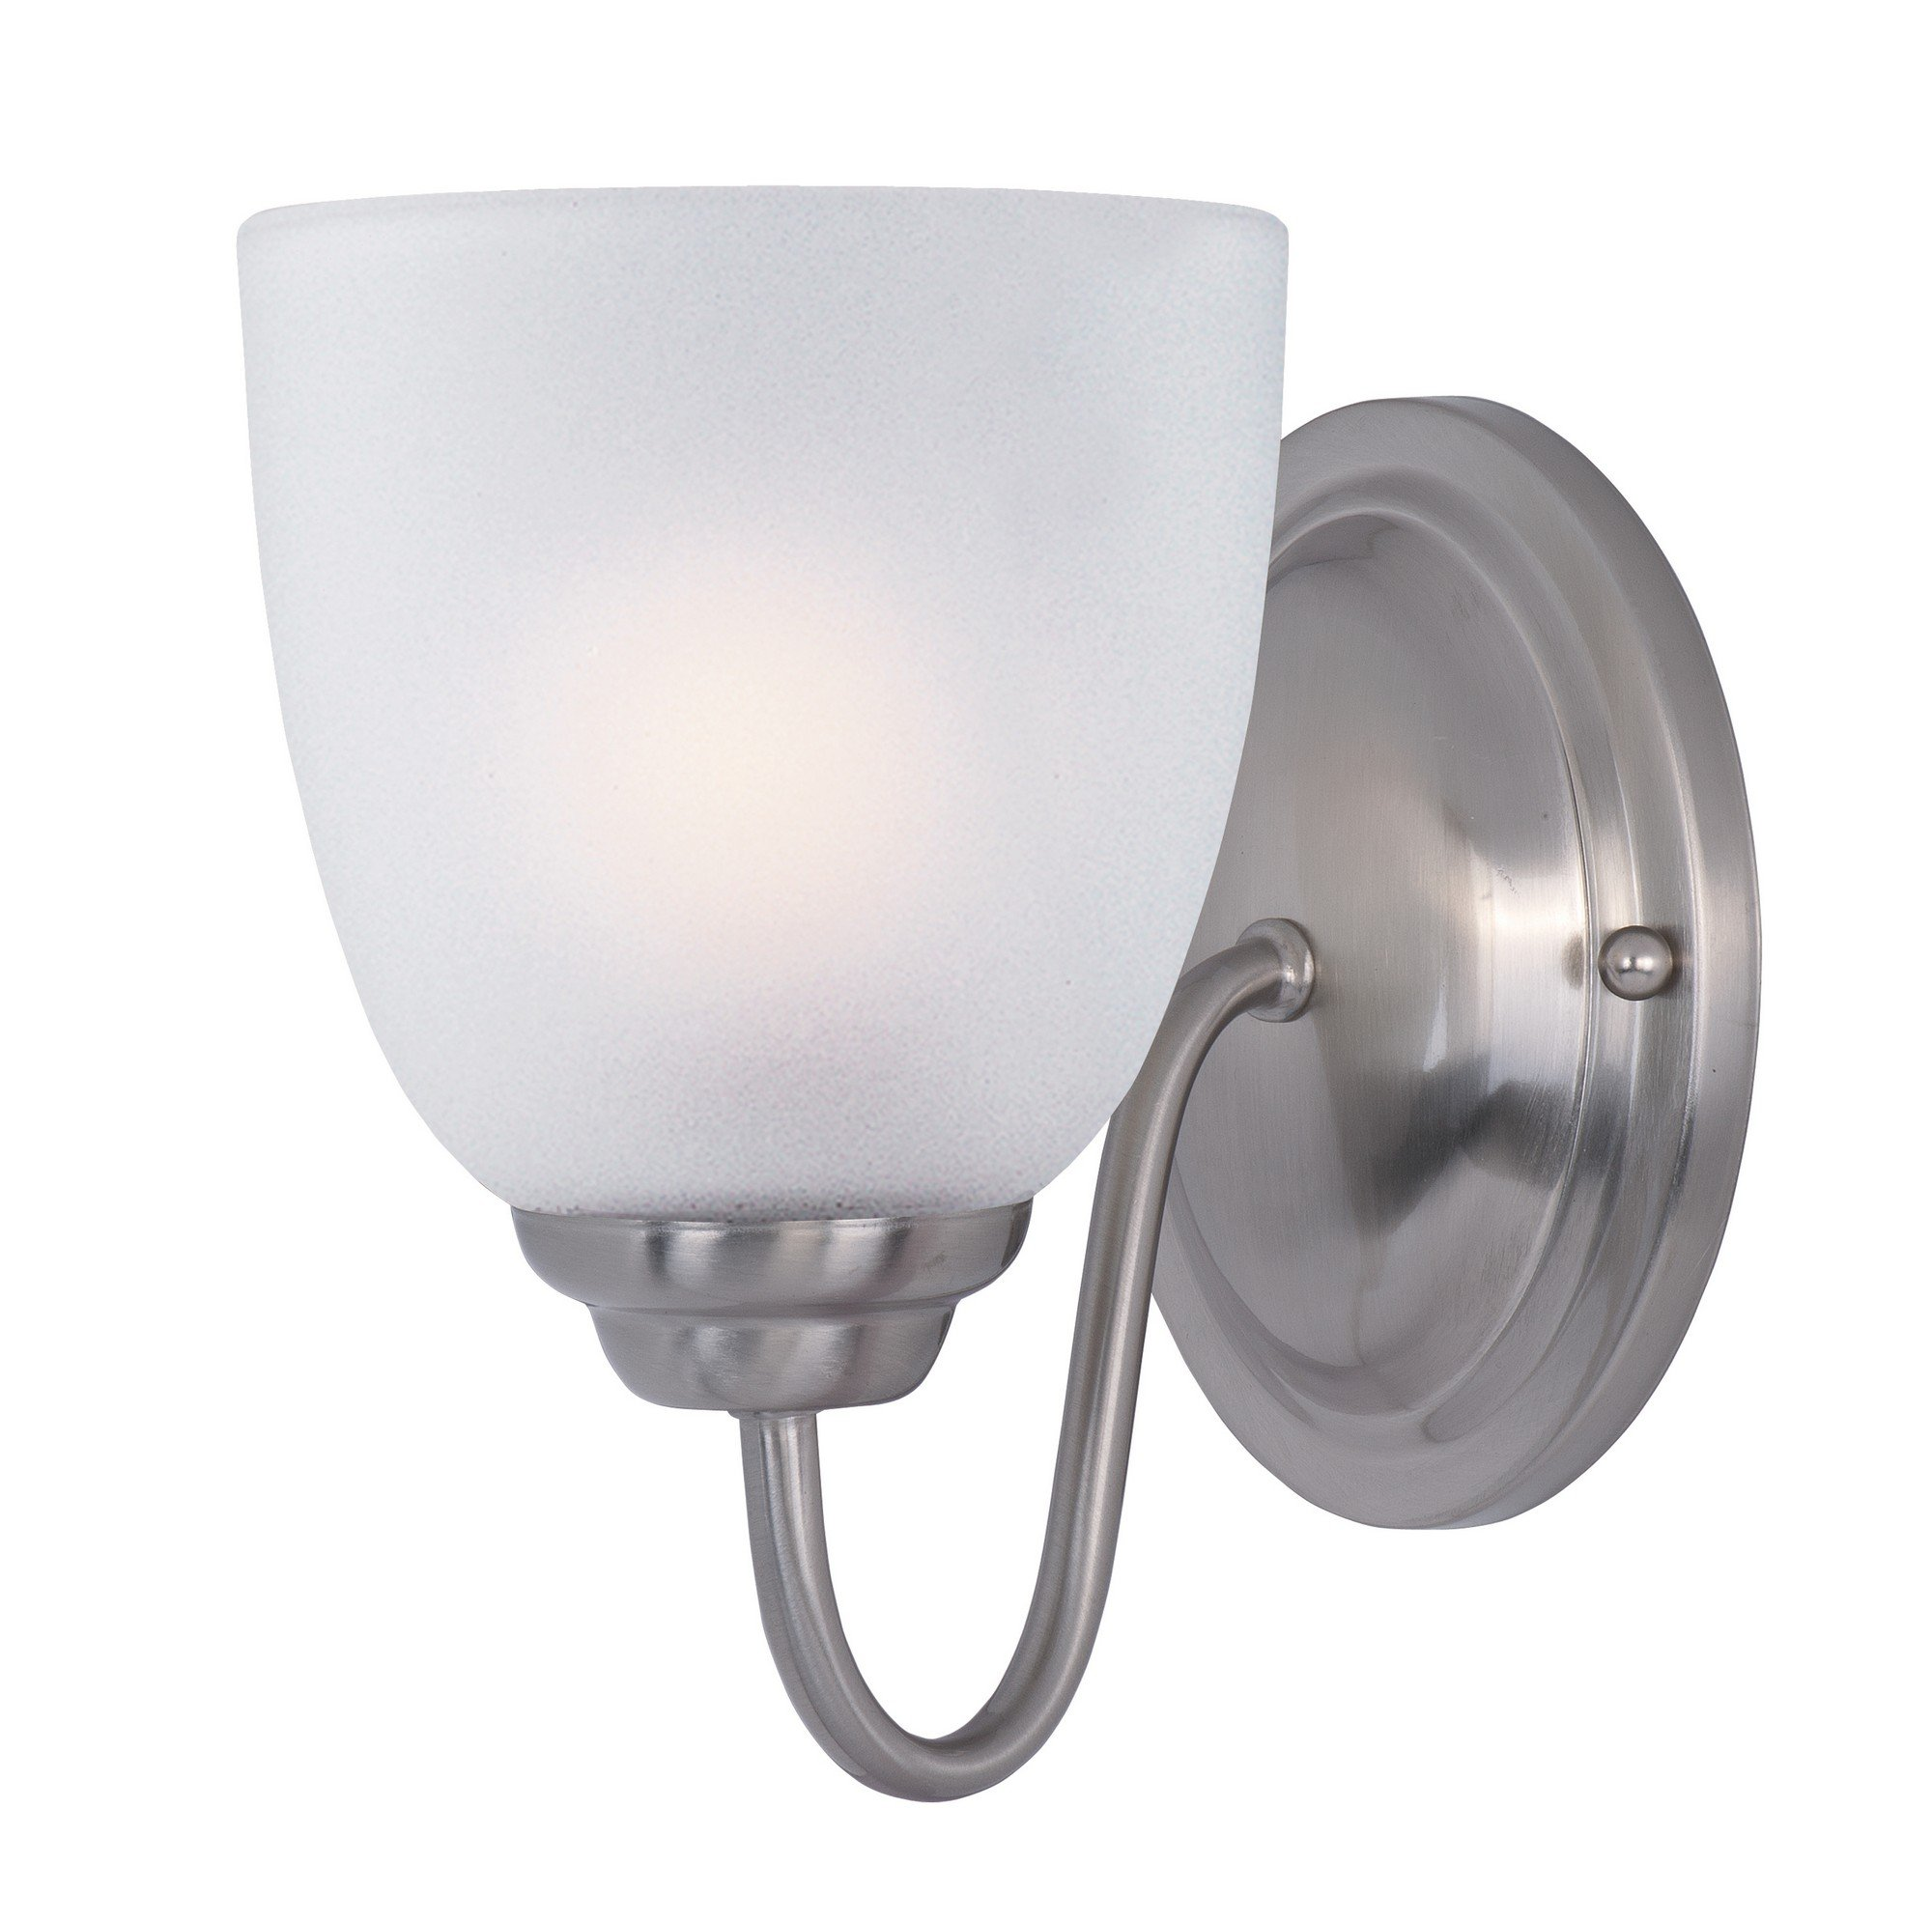 Maxim 10071FTSN Stefan 1-Light Wall Sconce, Satin Nickel Finish, Frosted Glass, MB Incandescent Incandescent Bulb , 100W Max., Dry Safety Rating, Standard Dimmable, Glass Shade Material, 3450 Rated Lumens